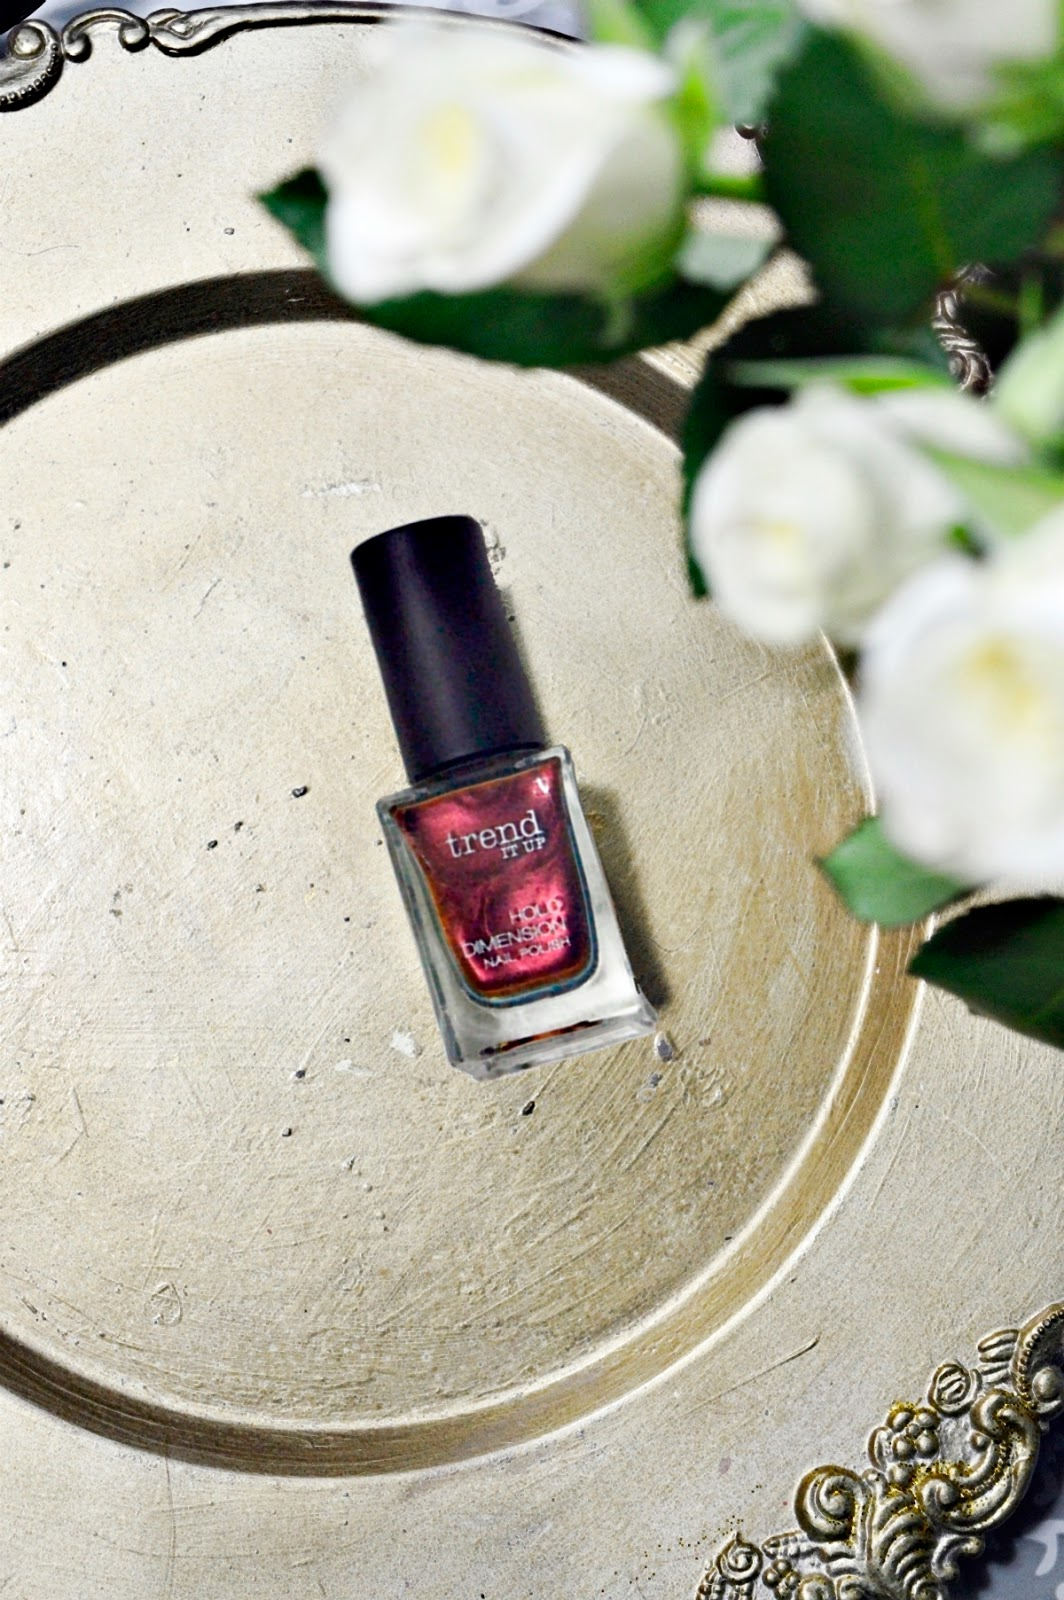 trend It Up Nagellack Holo Dimension Nail Polish 050 Top View 1